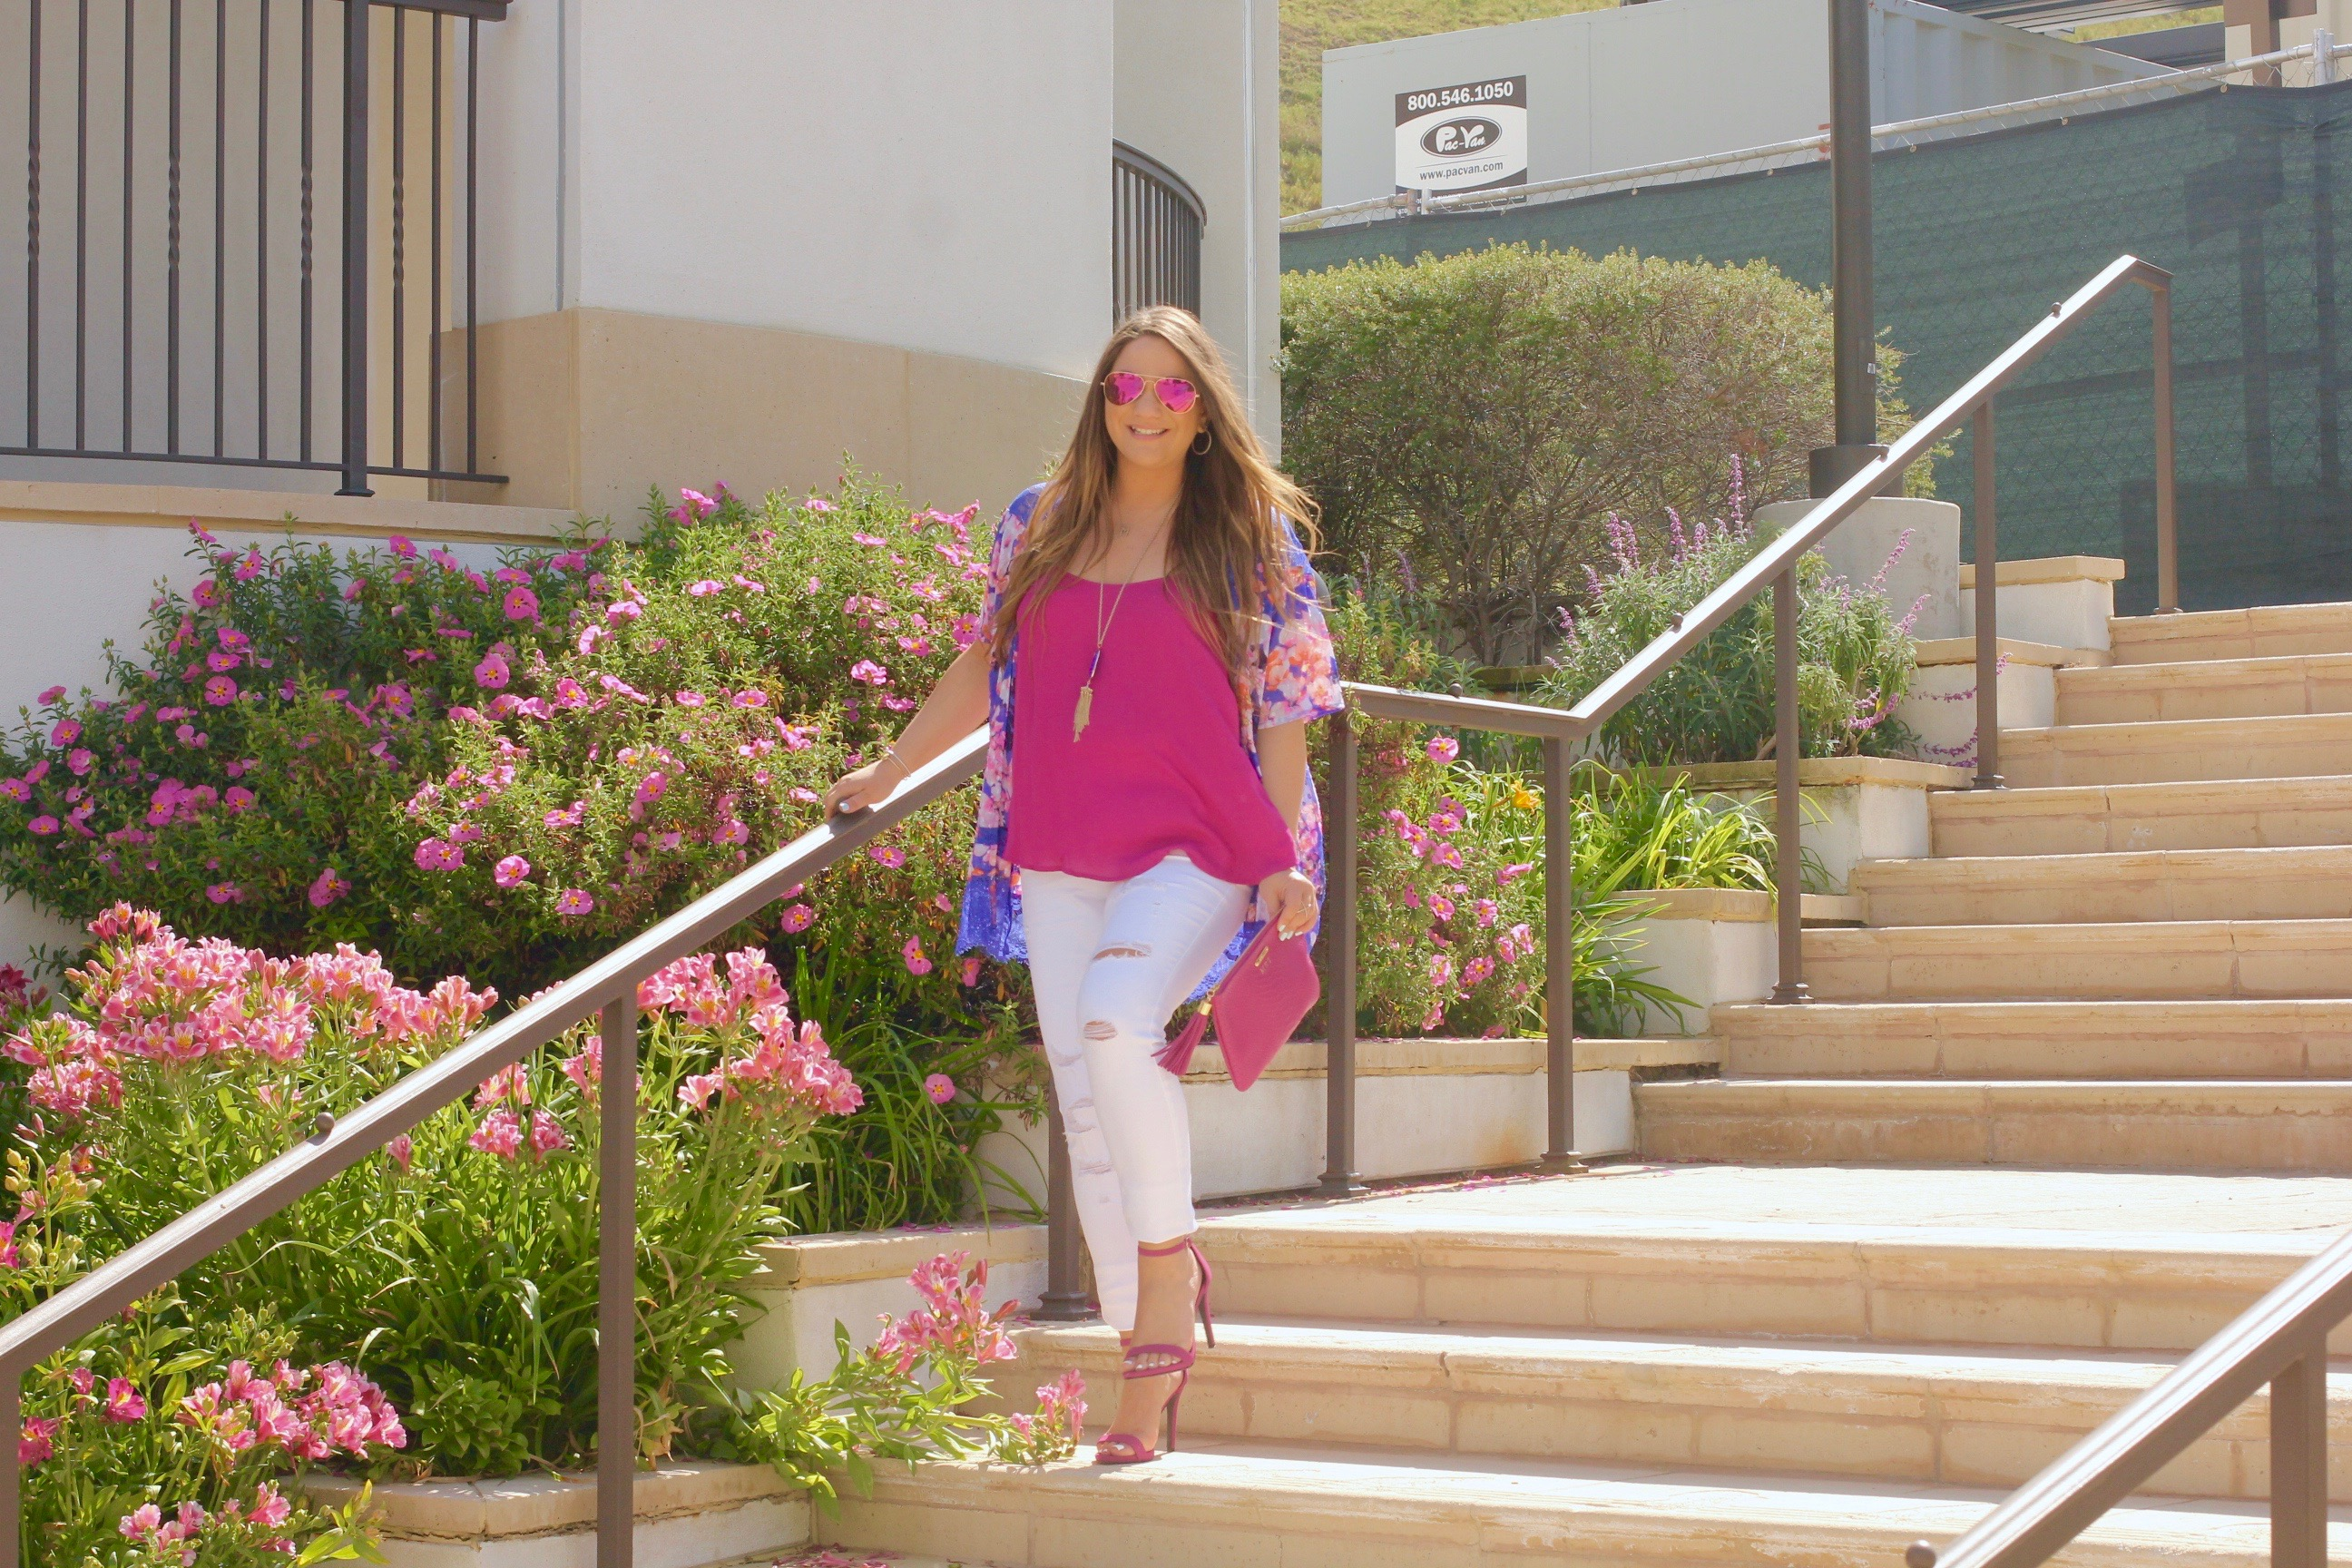 missyonmadison, melissa tierney, floral kimono, fuschia ankle strap heels, fuschia ankle strap sandals, fuschia heels, old navy, white skinny jeans, old navy white rockstar jeans, gigi ny clutch, gigi ny, gigi ny magenta clutch, kendra scott, kendra scott rayne necklace, mirrored aviators, pink mirrored aviators, pink chiffon camisole, apt 9 camisole, fashion blogger, style blogger, spring style,